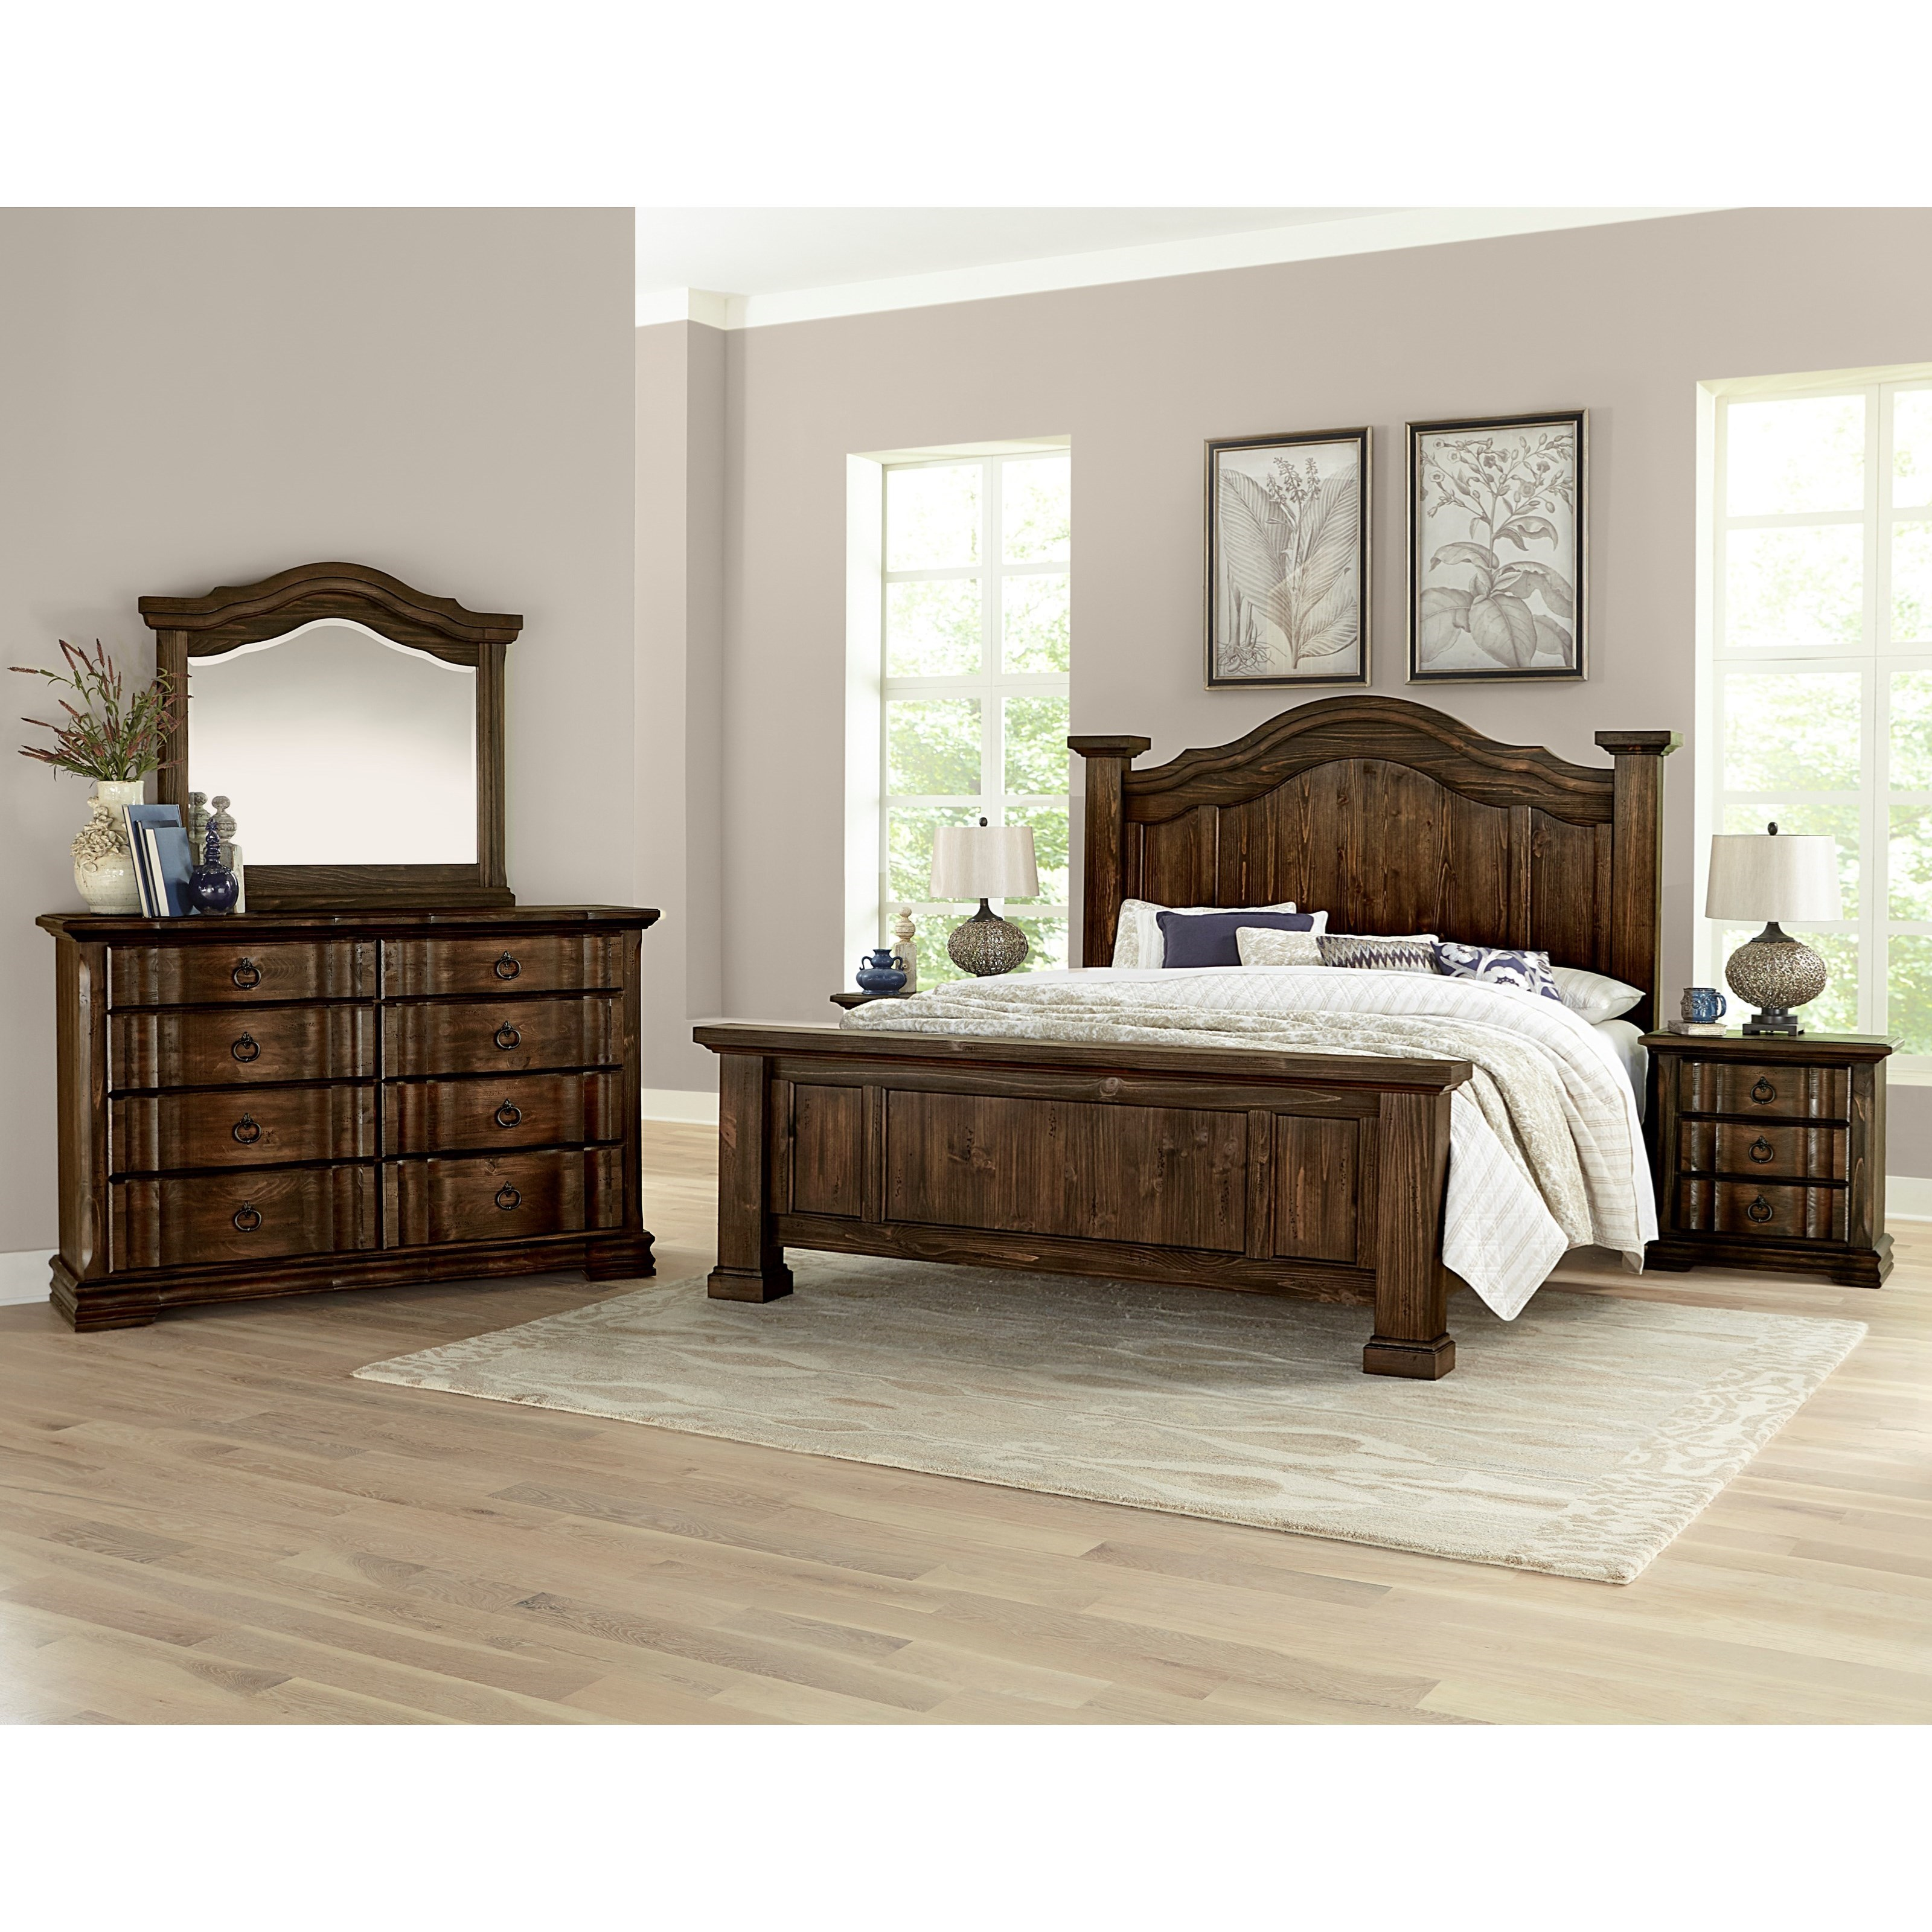 vaughan bassett rustic hills king poster bed with arched 17708 | products 2fvaughan bassett 2fcolor 2frustic 20hills 680 559 2b955 2b922 b7